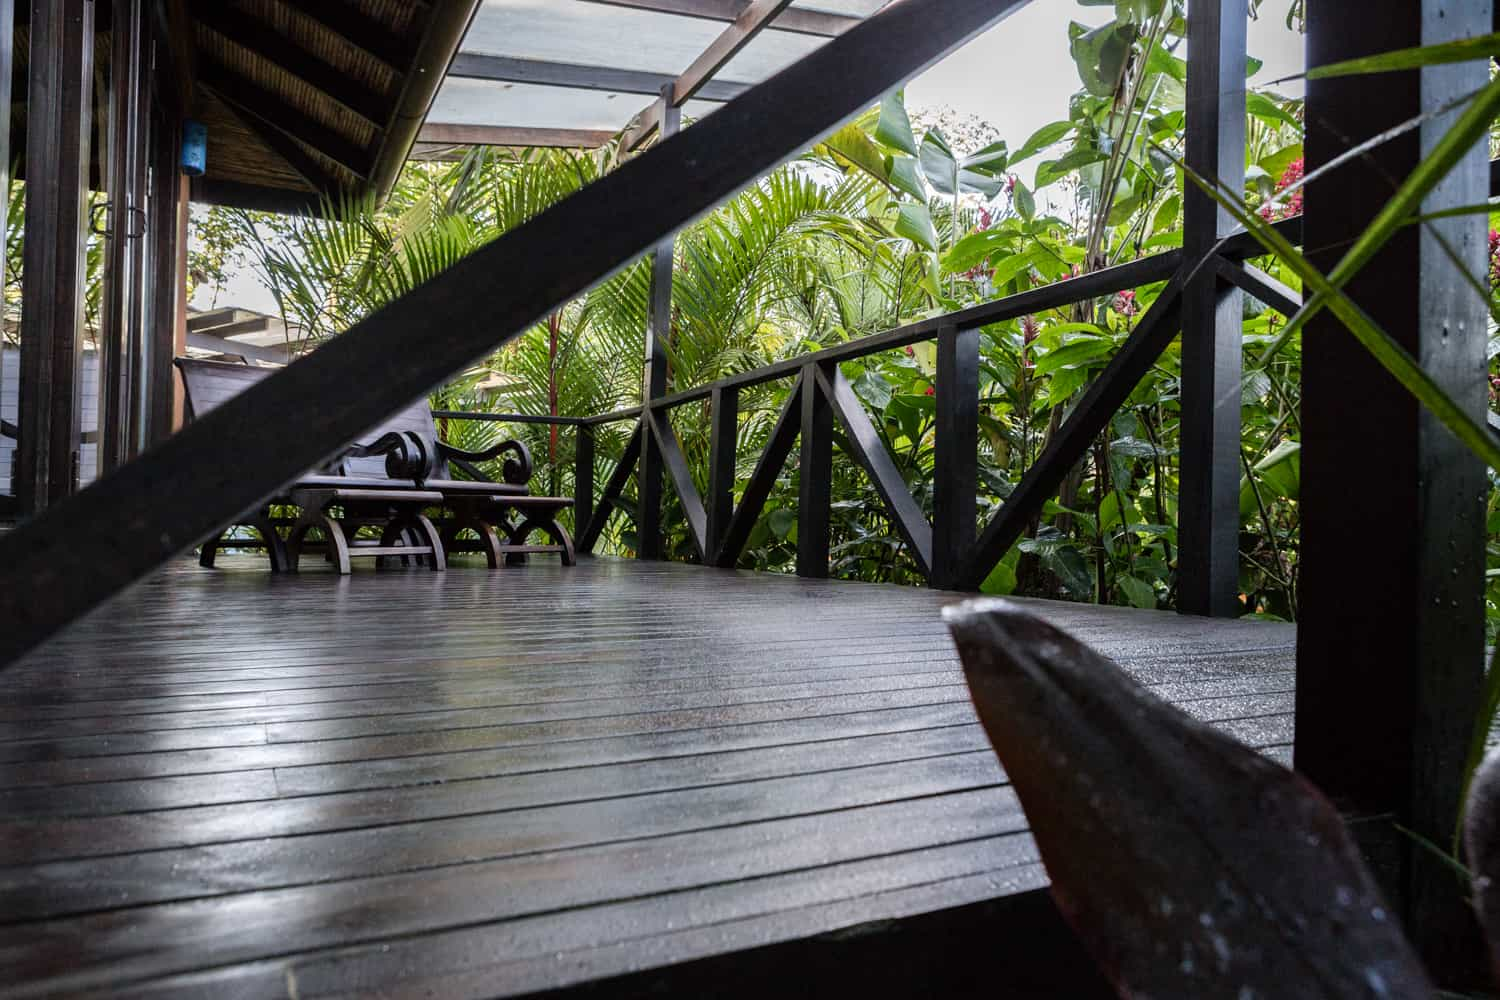 Garden view wood deck at Rio Celeste Hideaway Hotel for private wedding.